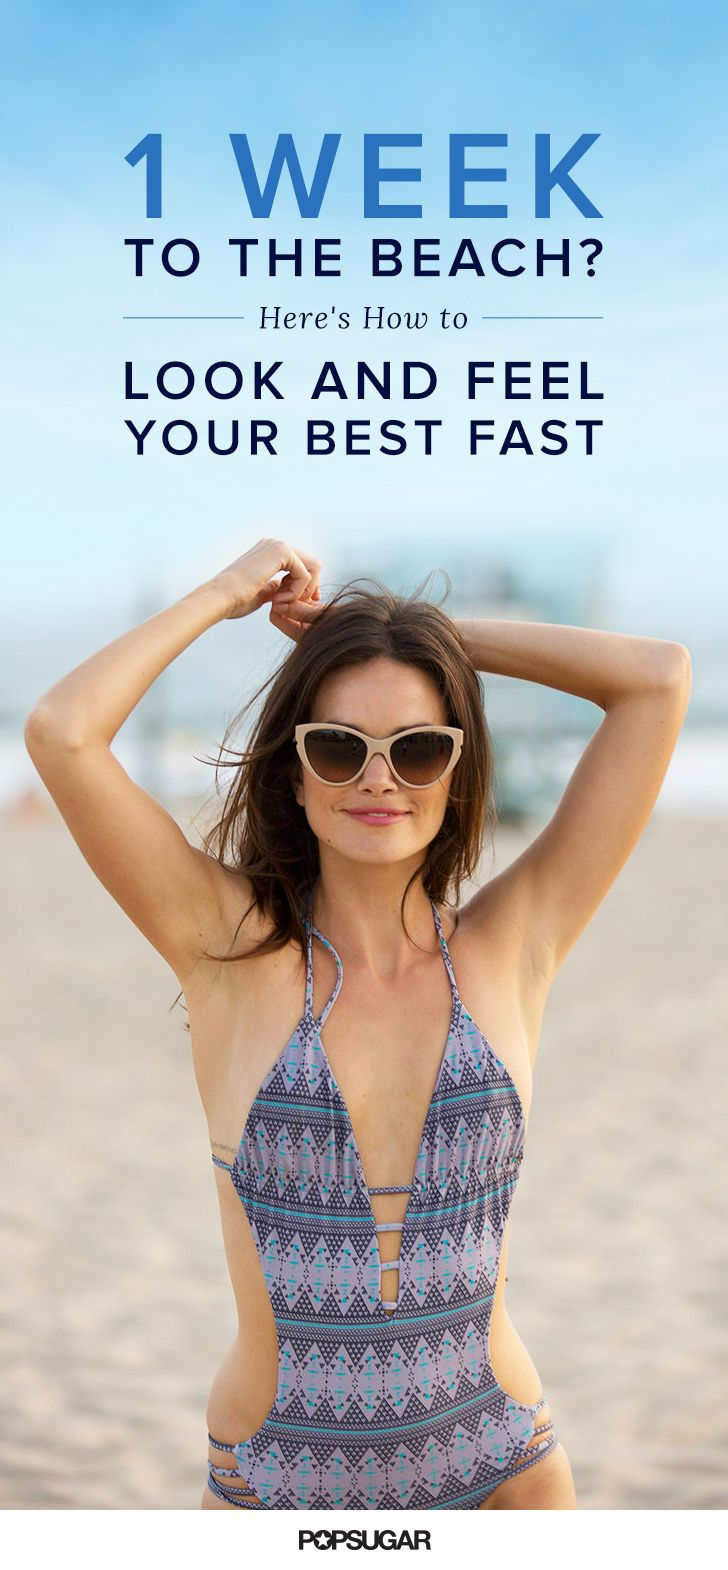 Beach trip coming up? Don't panic! This weeklong plan will have you feeling your absolute best.